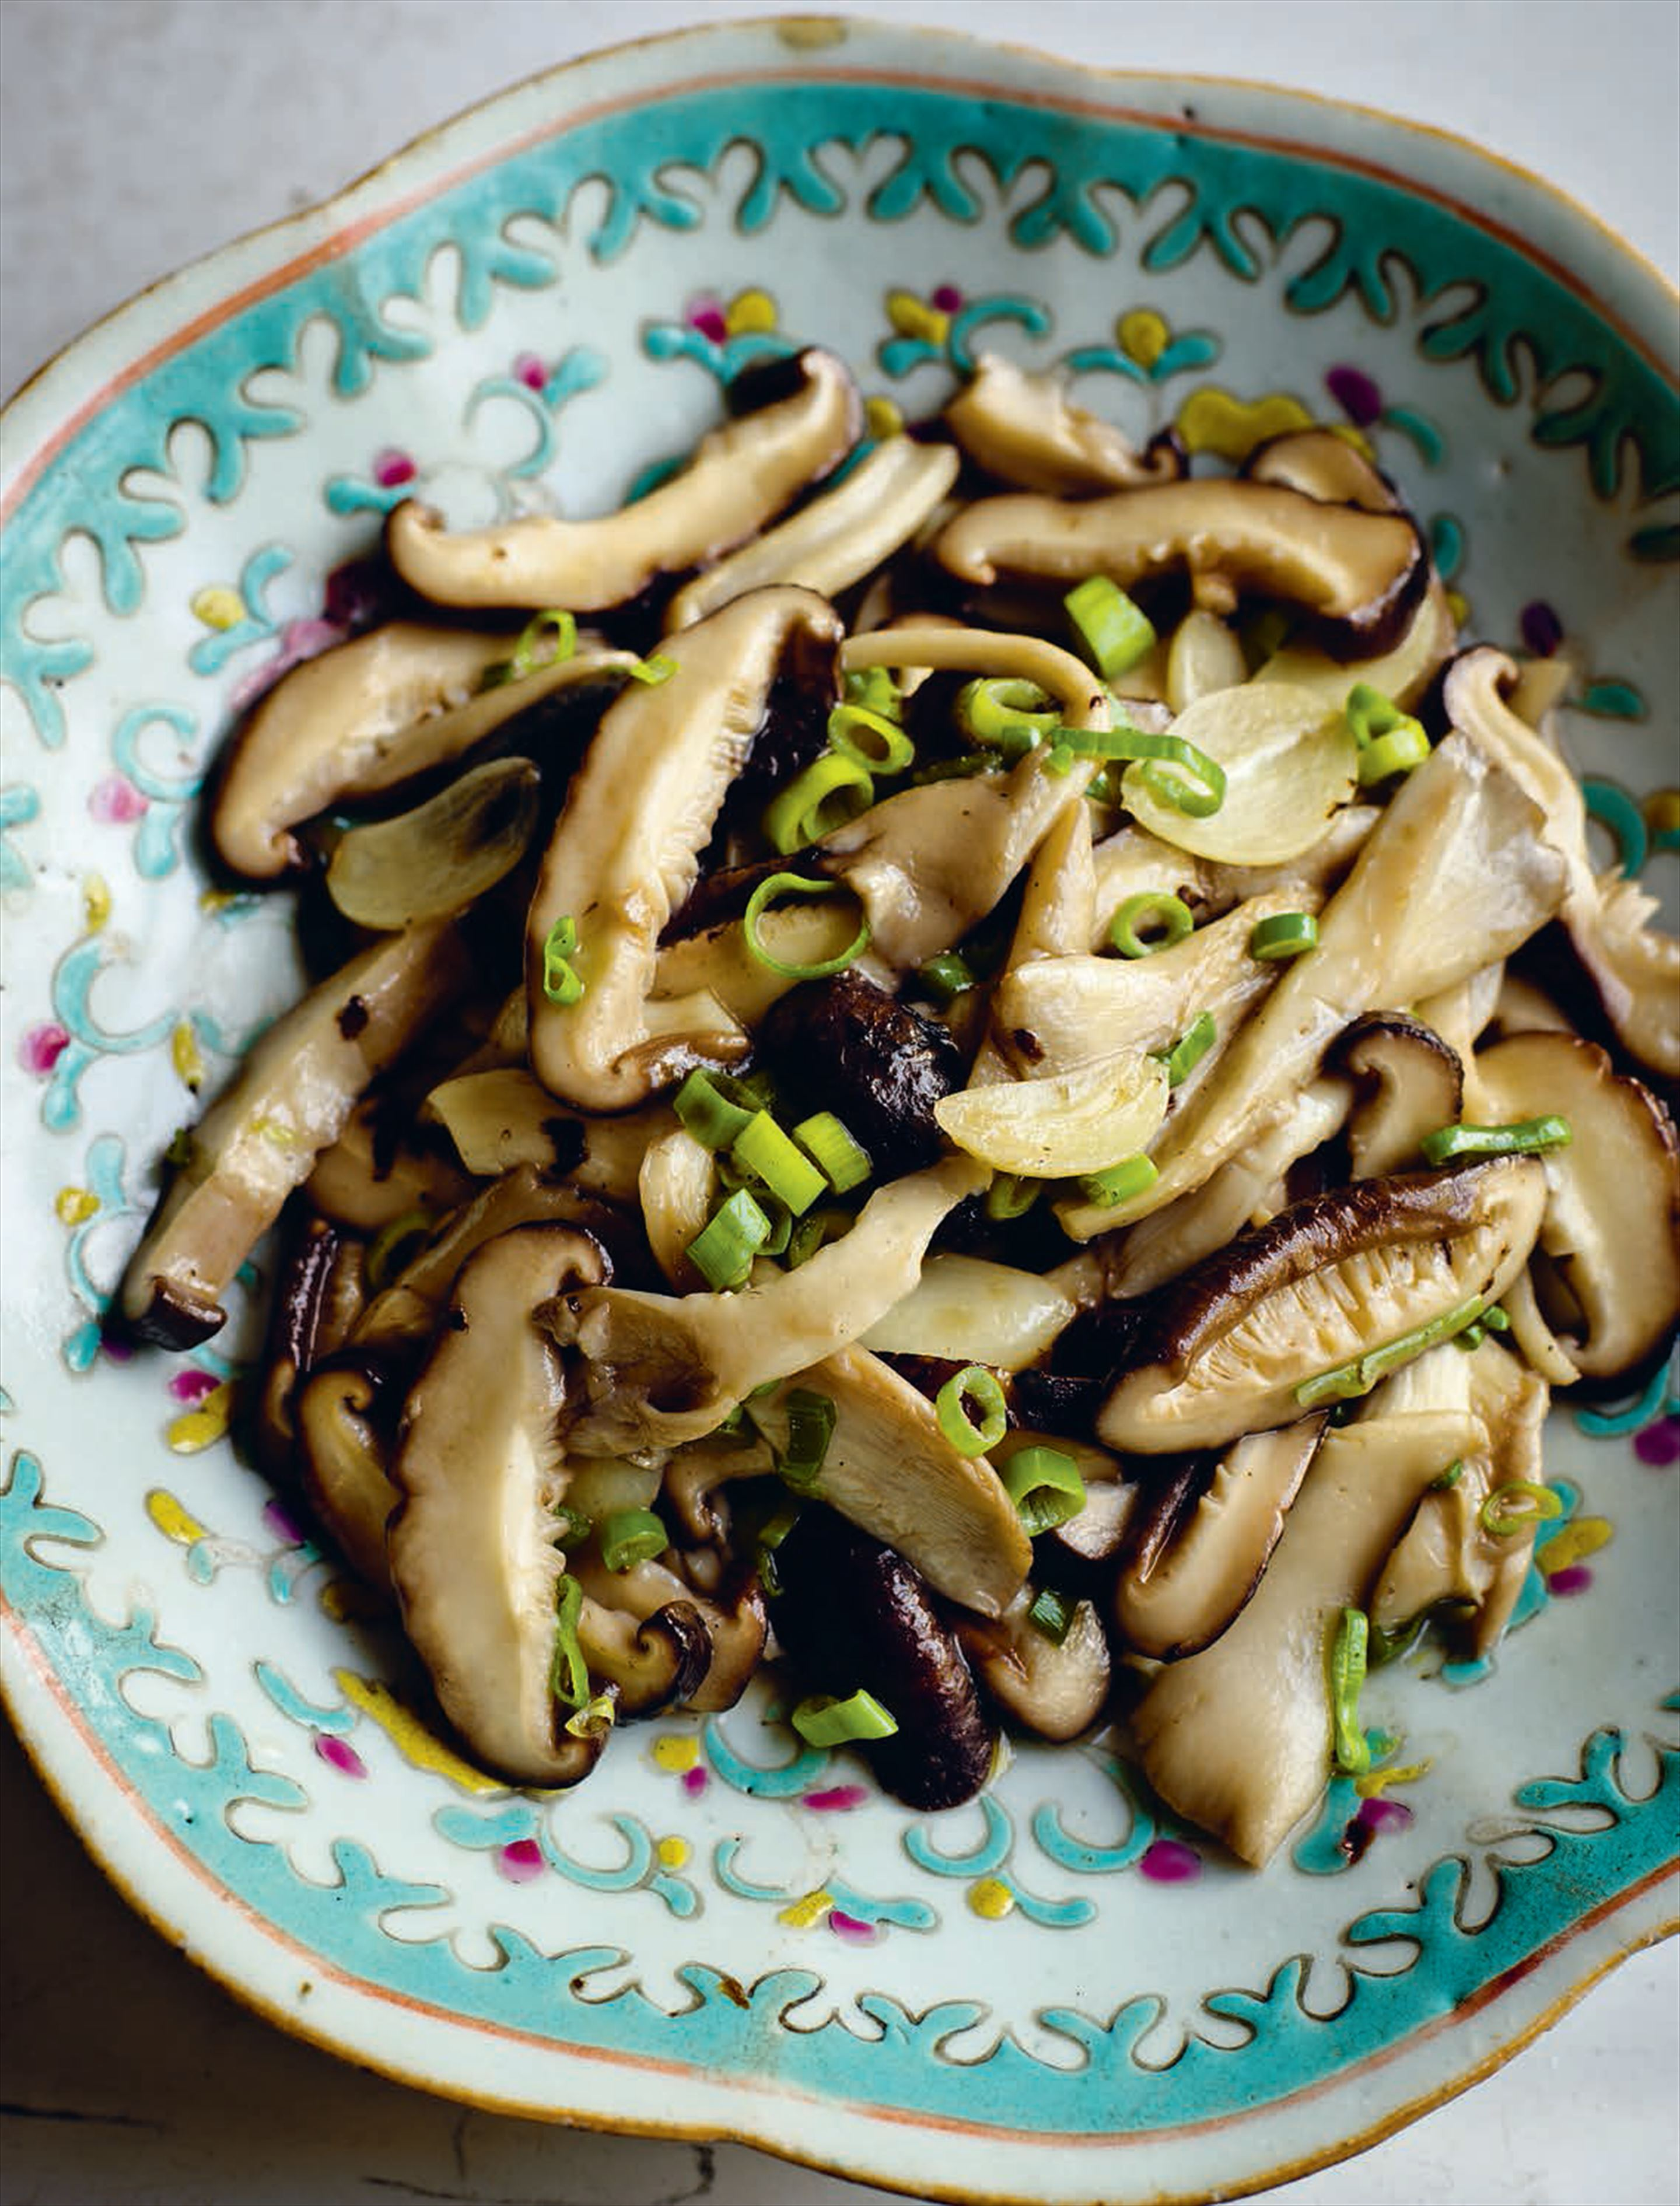 Stir-fried oyster and shiitake mushrooms with garlic